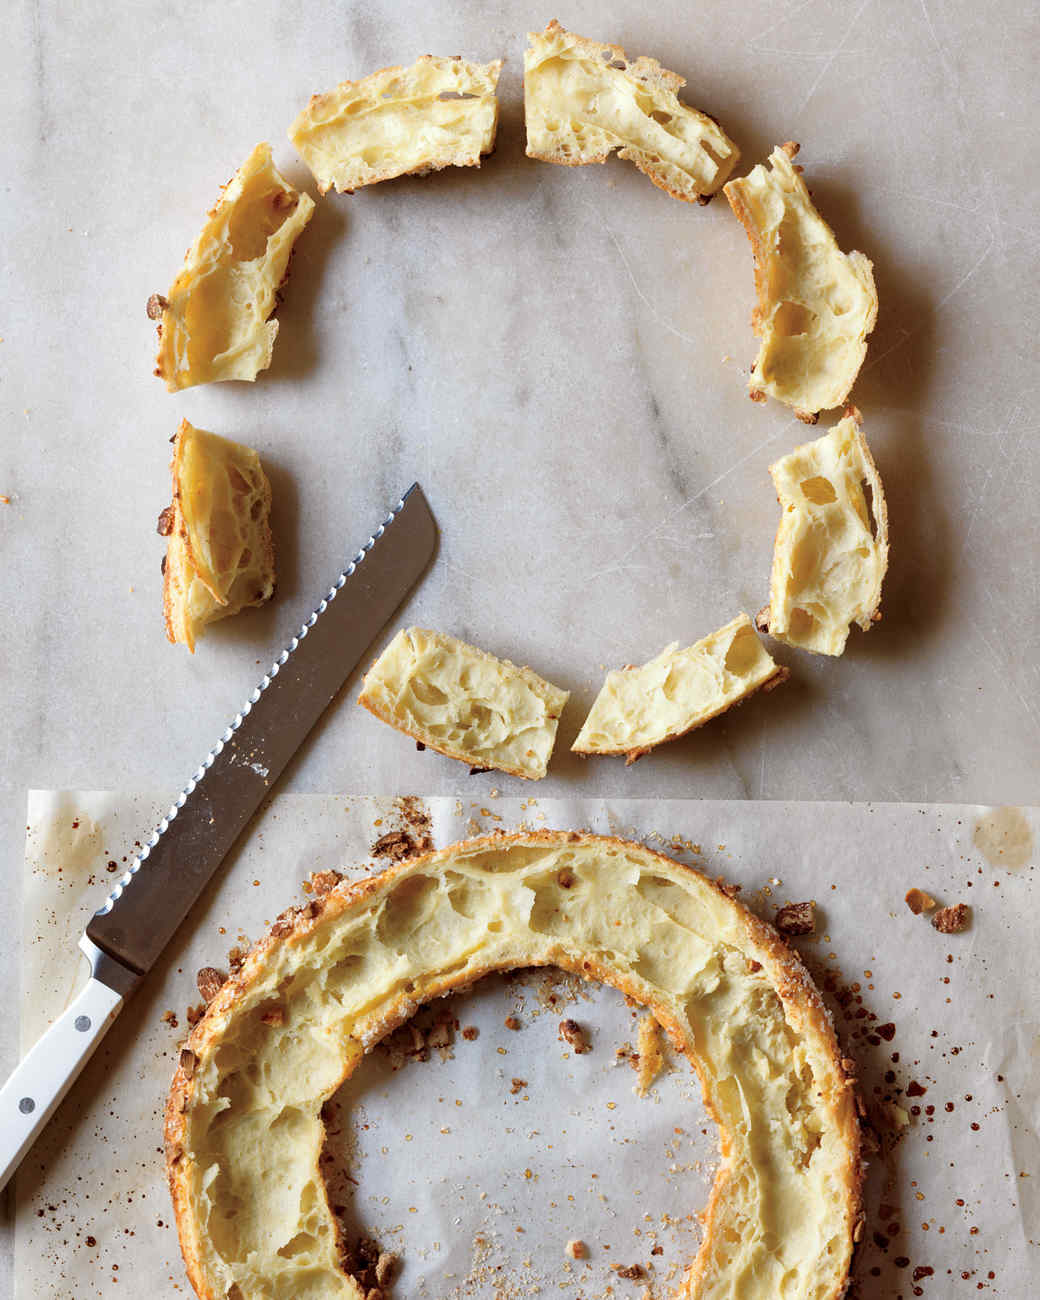 pastry-wreath-4-md107770.jpg